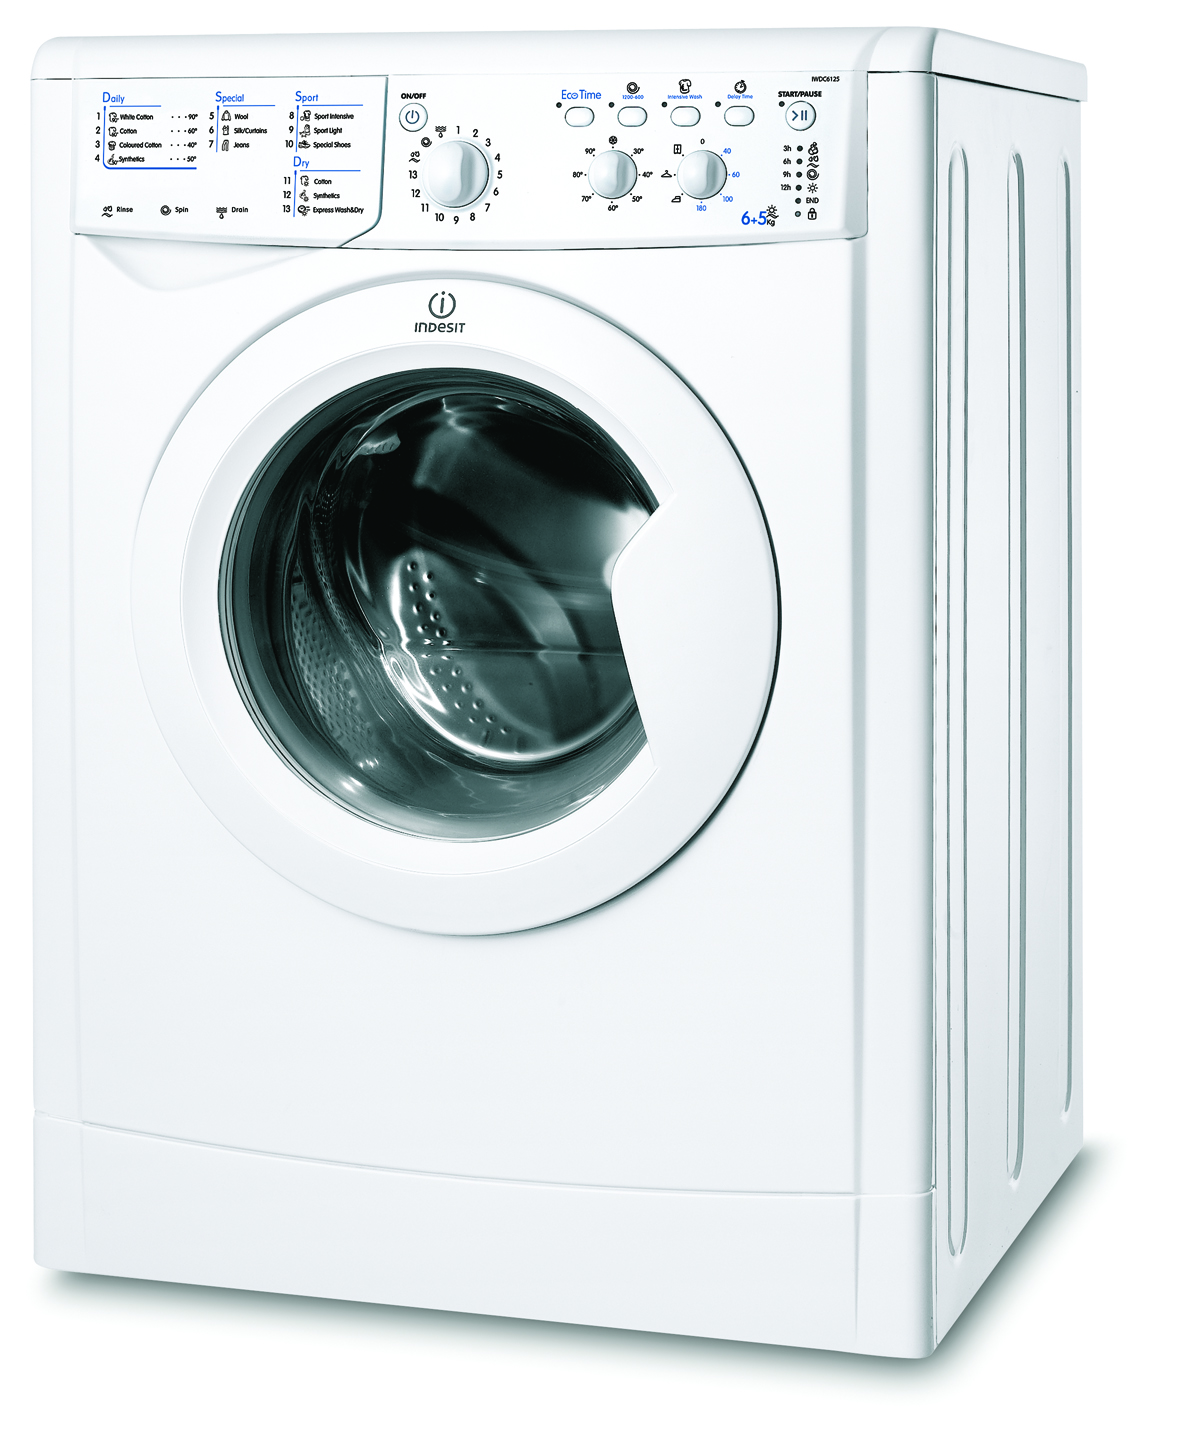 buy washer dryers in london indesit iwdc6125 washer dryer freestanding domex appliance store. Black Bedroom Furniture Sets. Home Design Ideas